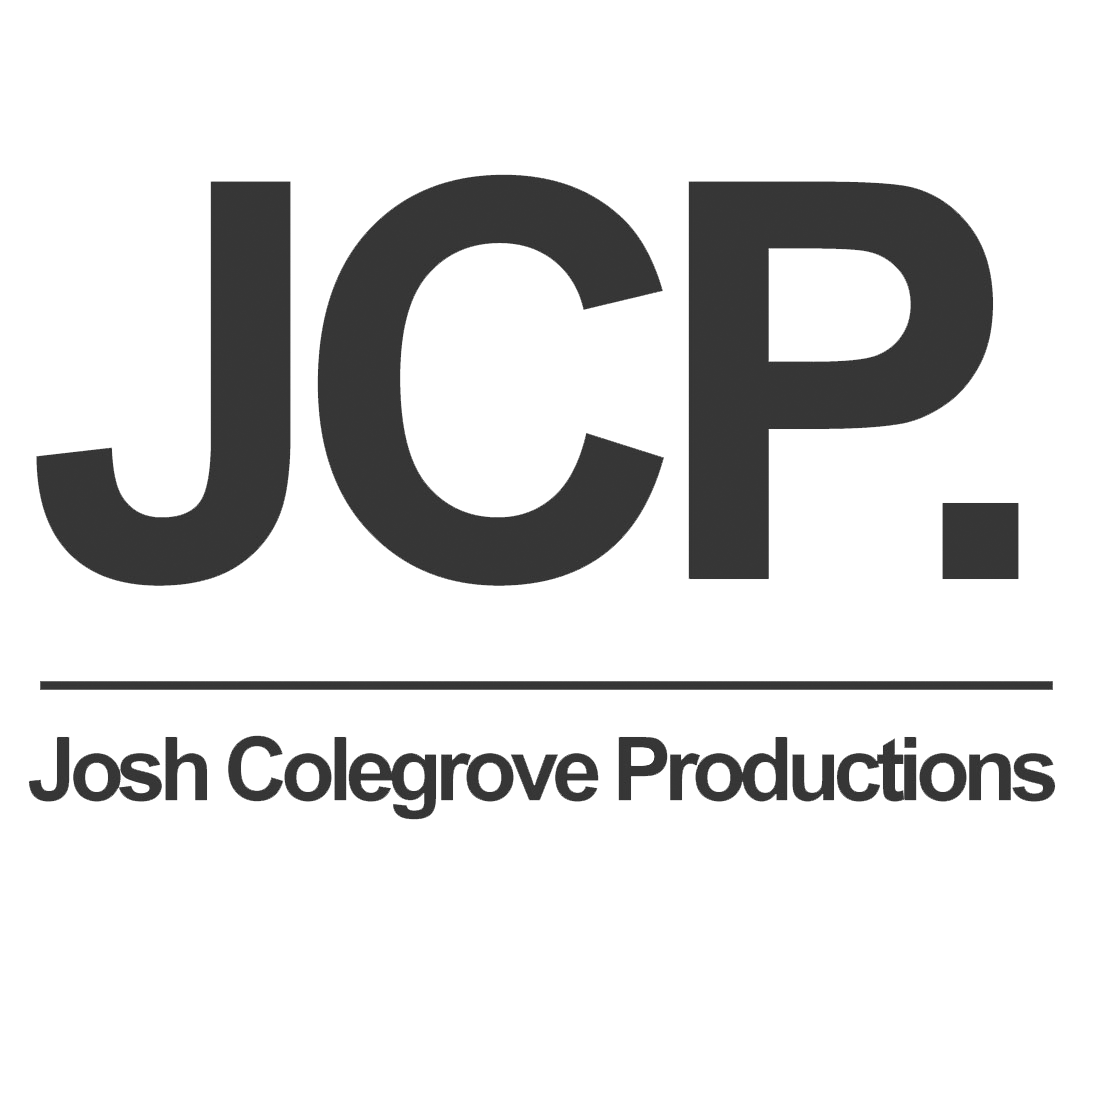 Josh Colegrove Productions